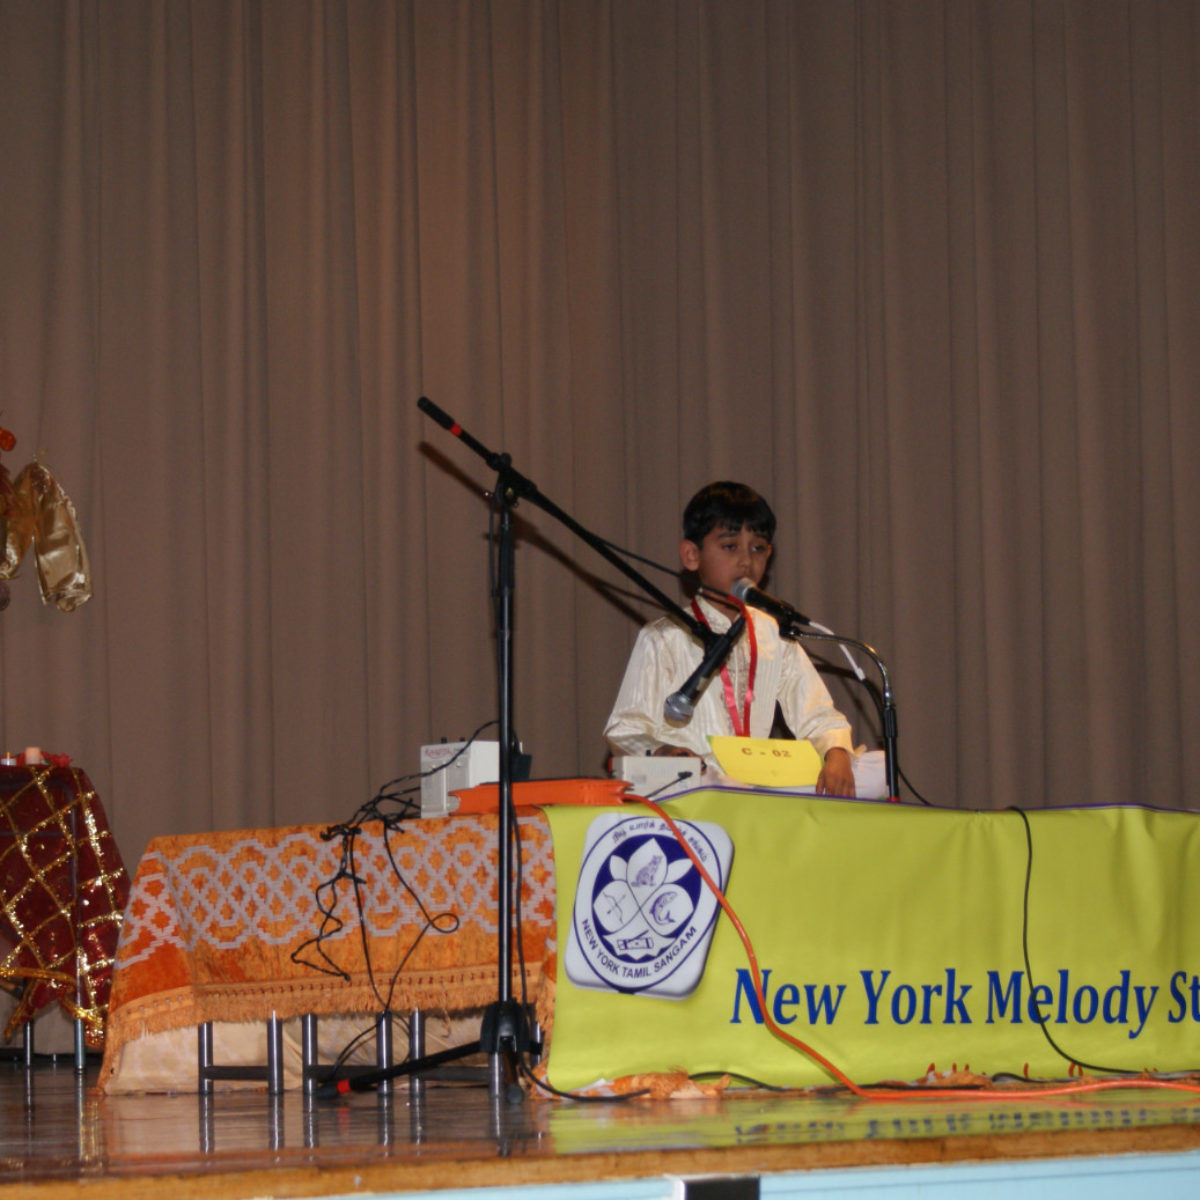 NY Melody Star Singer Contest- First Audition Pictures